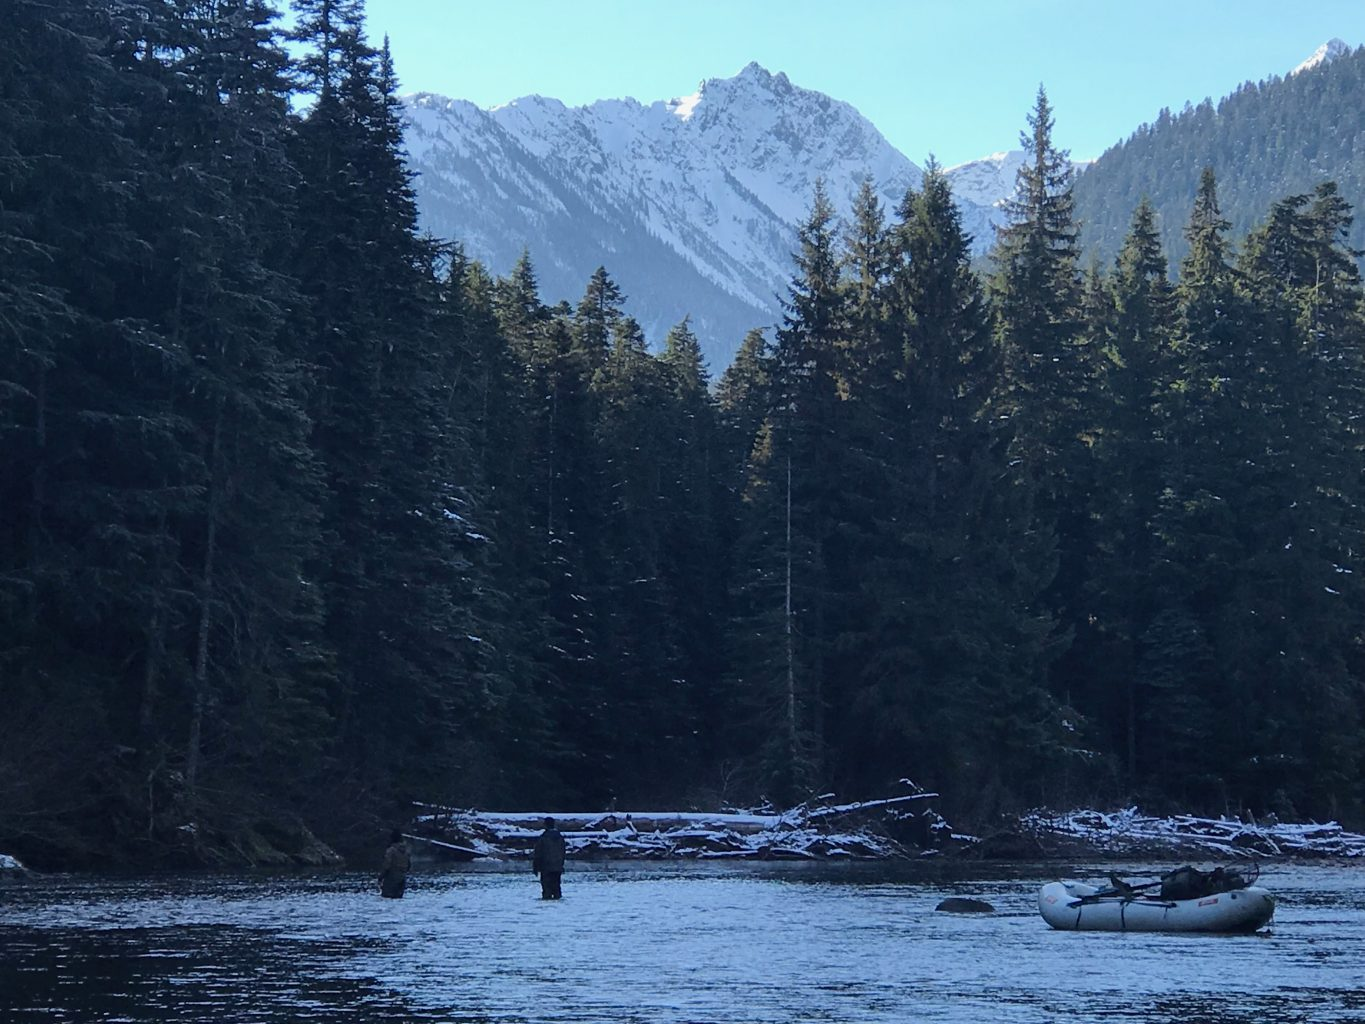 View from the Upper Copper River, BC